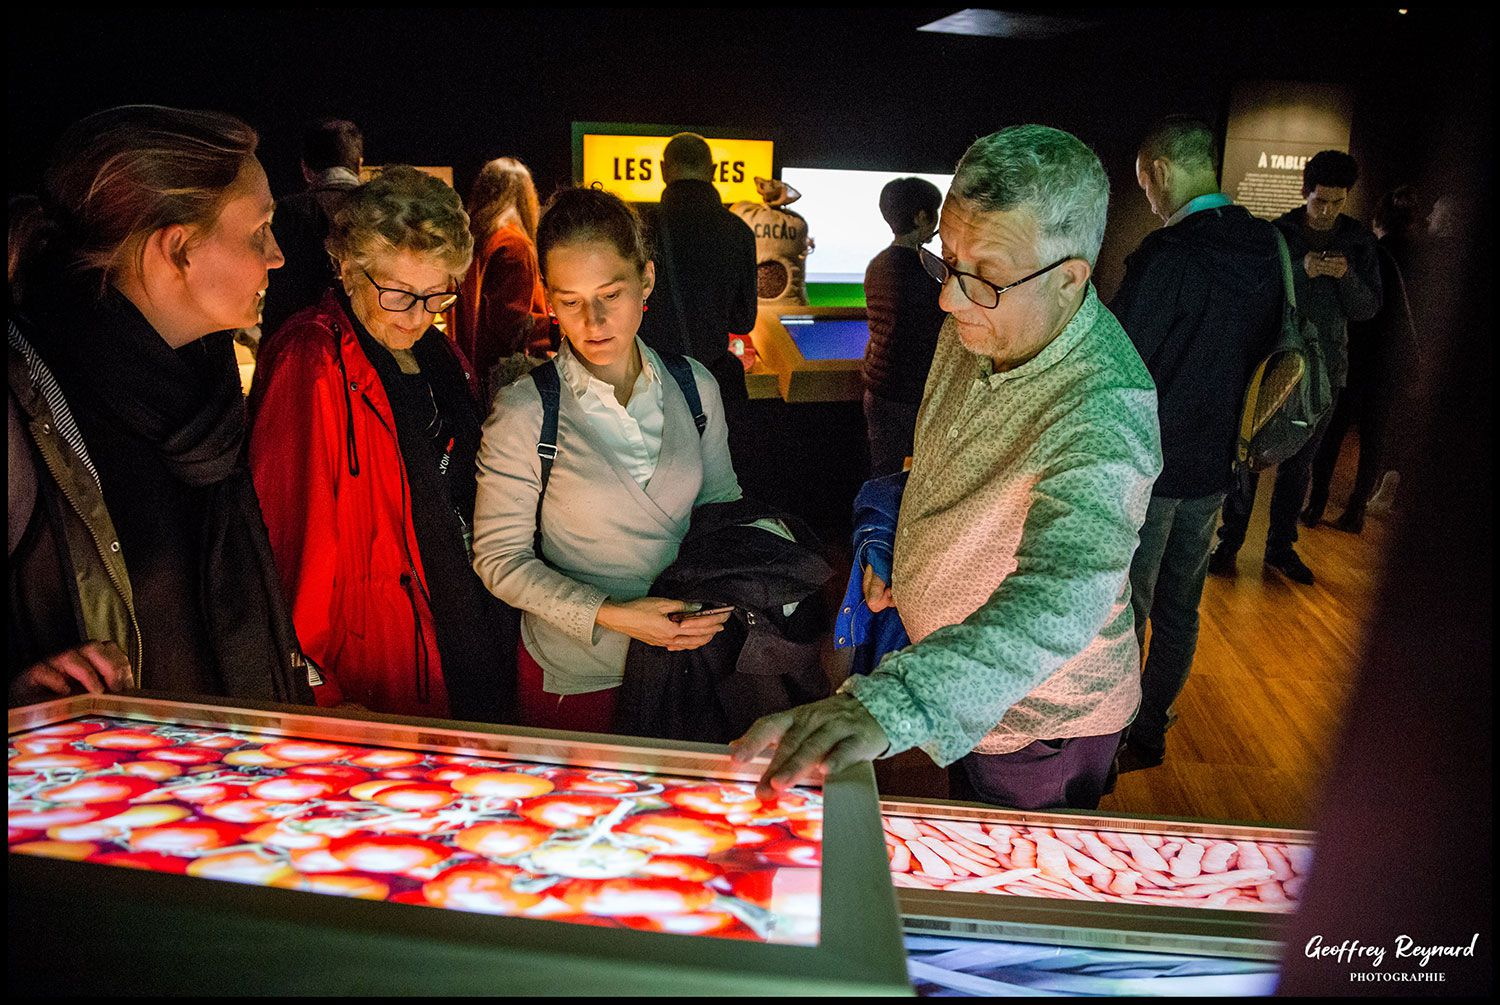 Many exhibits employ vivid touchscreens, though the material is light on substance.